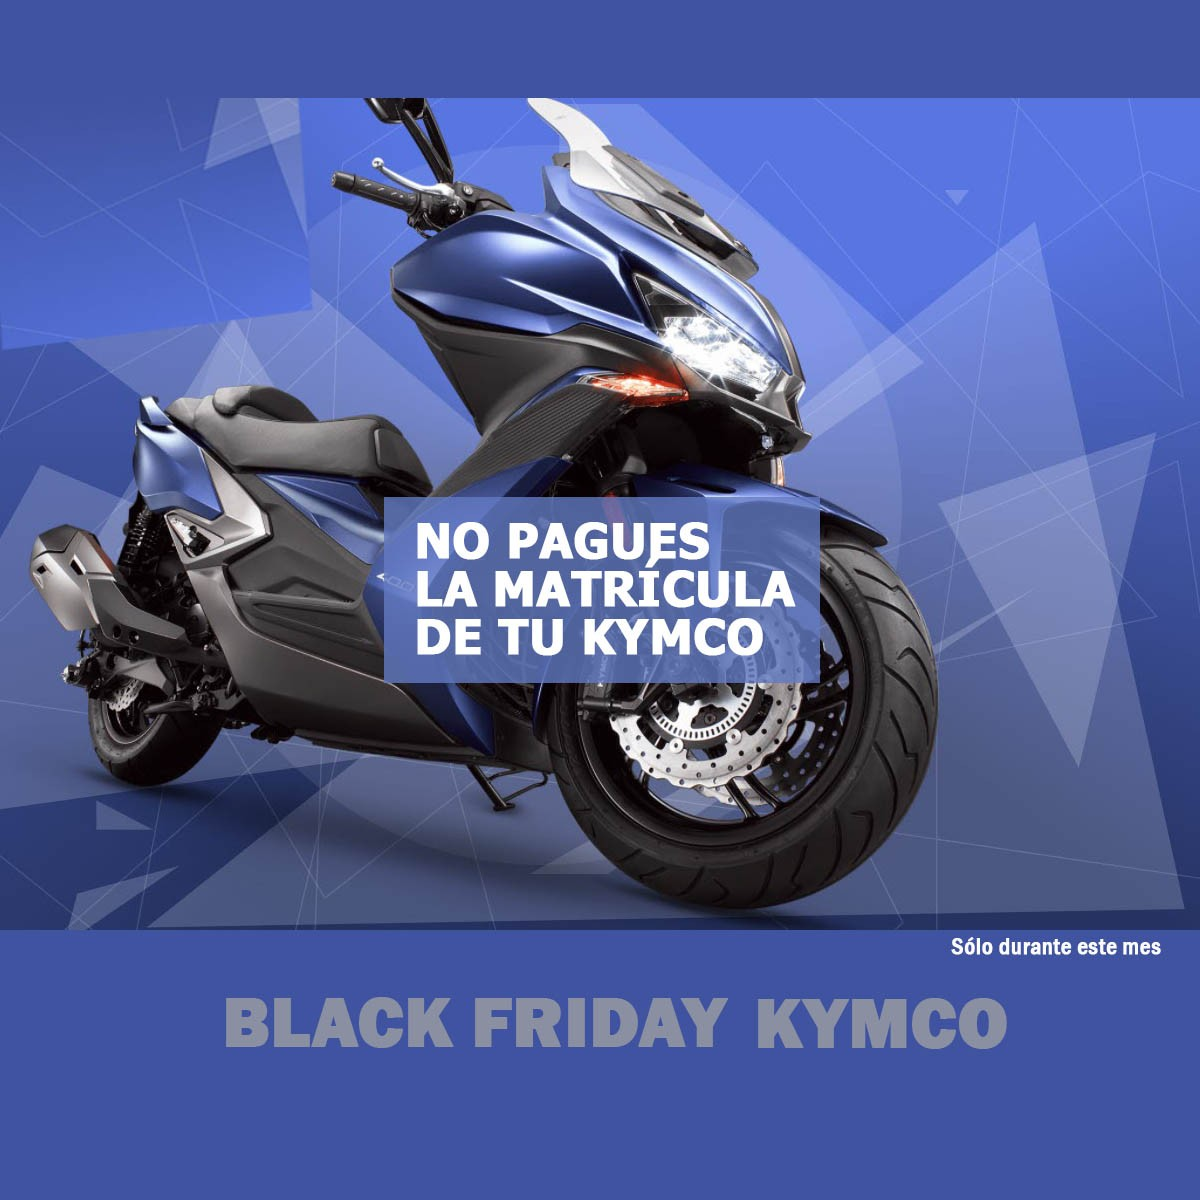 BLACK FRIDAY KYMCO